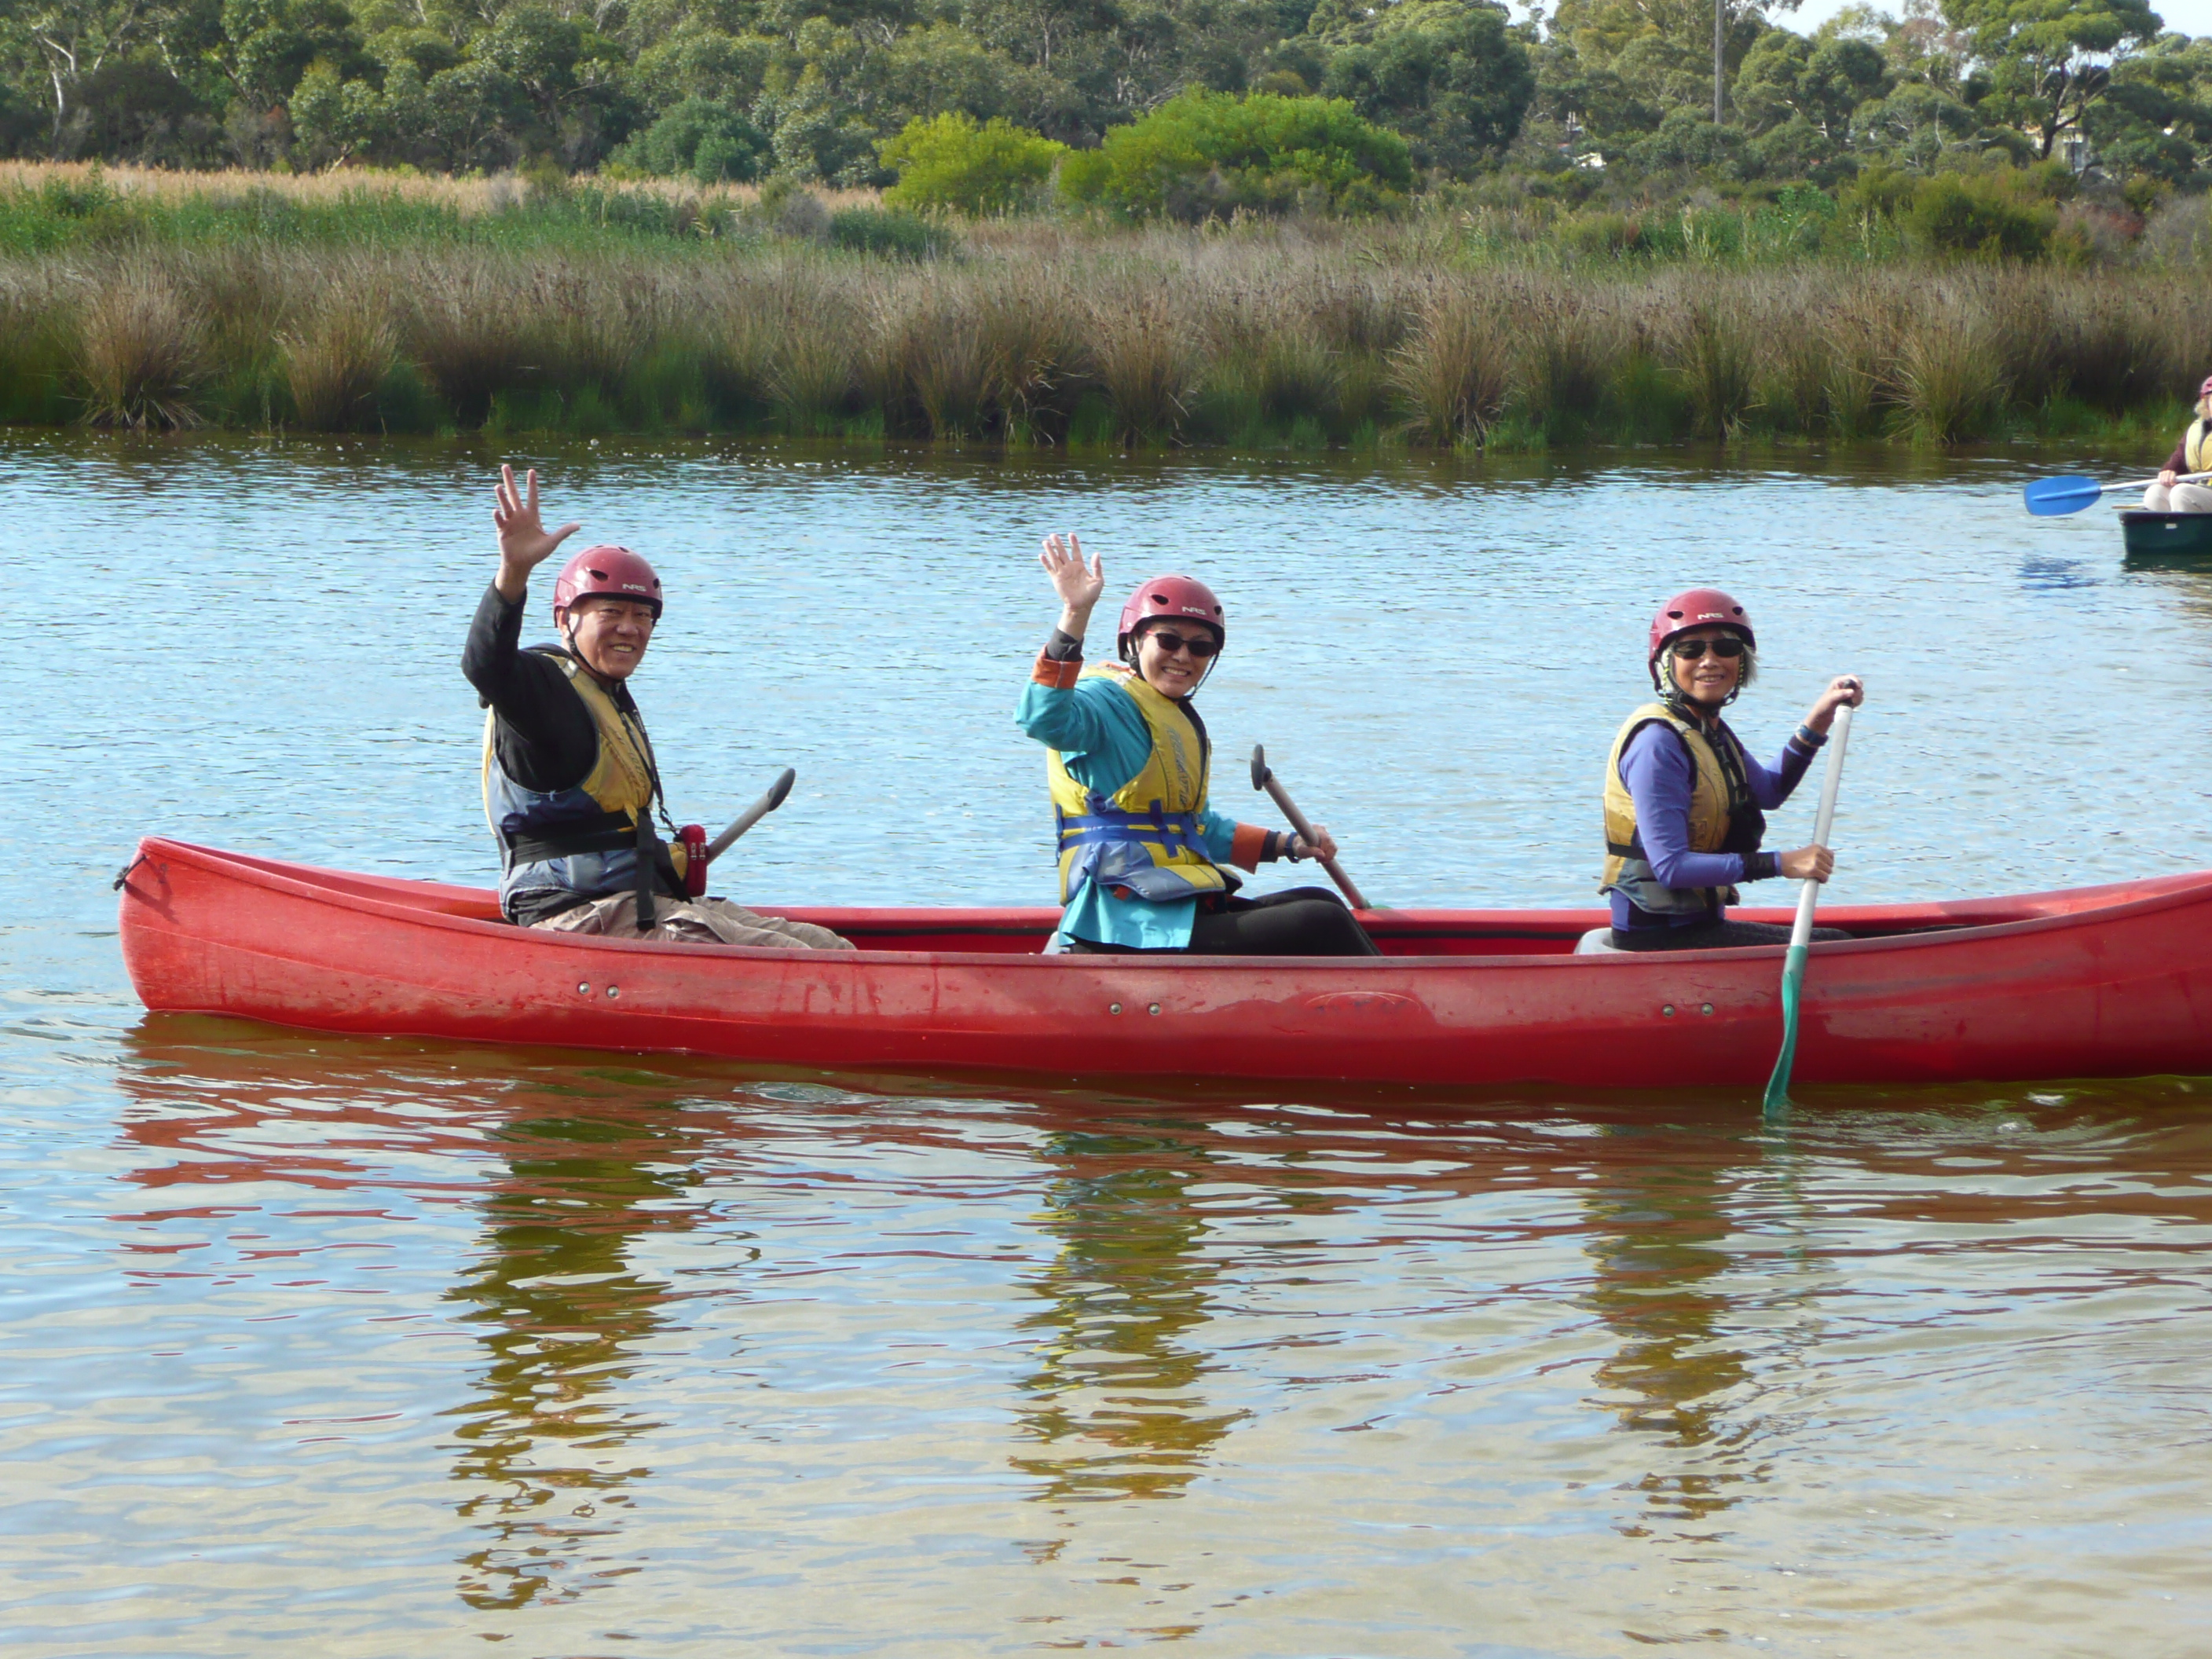 Anglesea Camp Canoeing Kin chung nancy and Pat.JPG